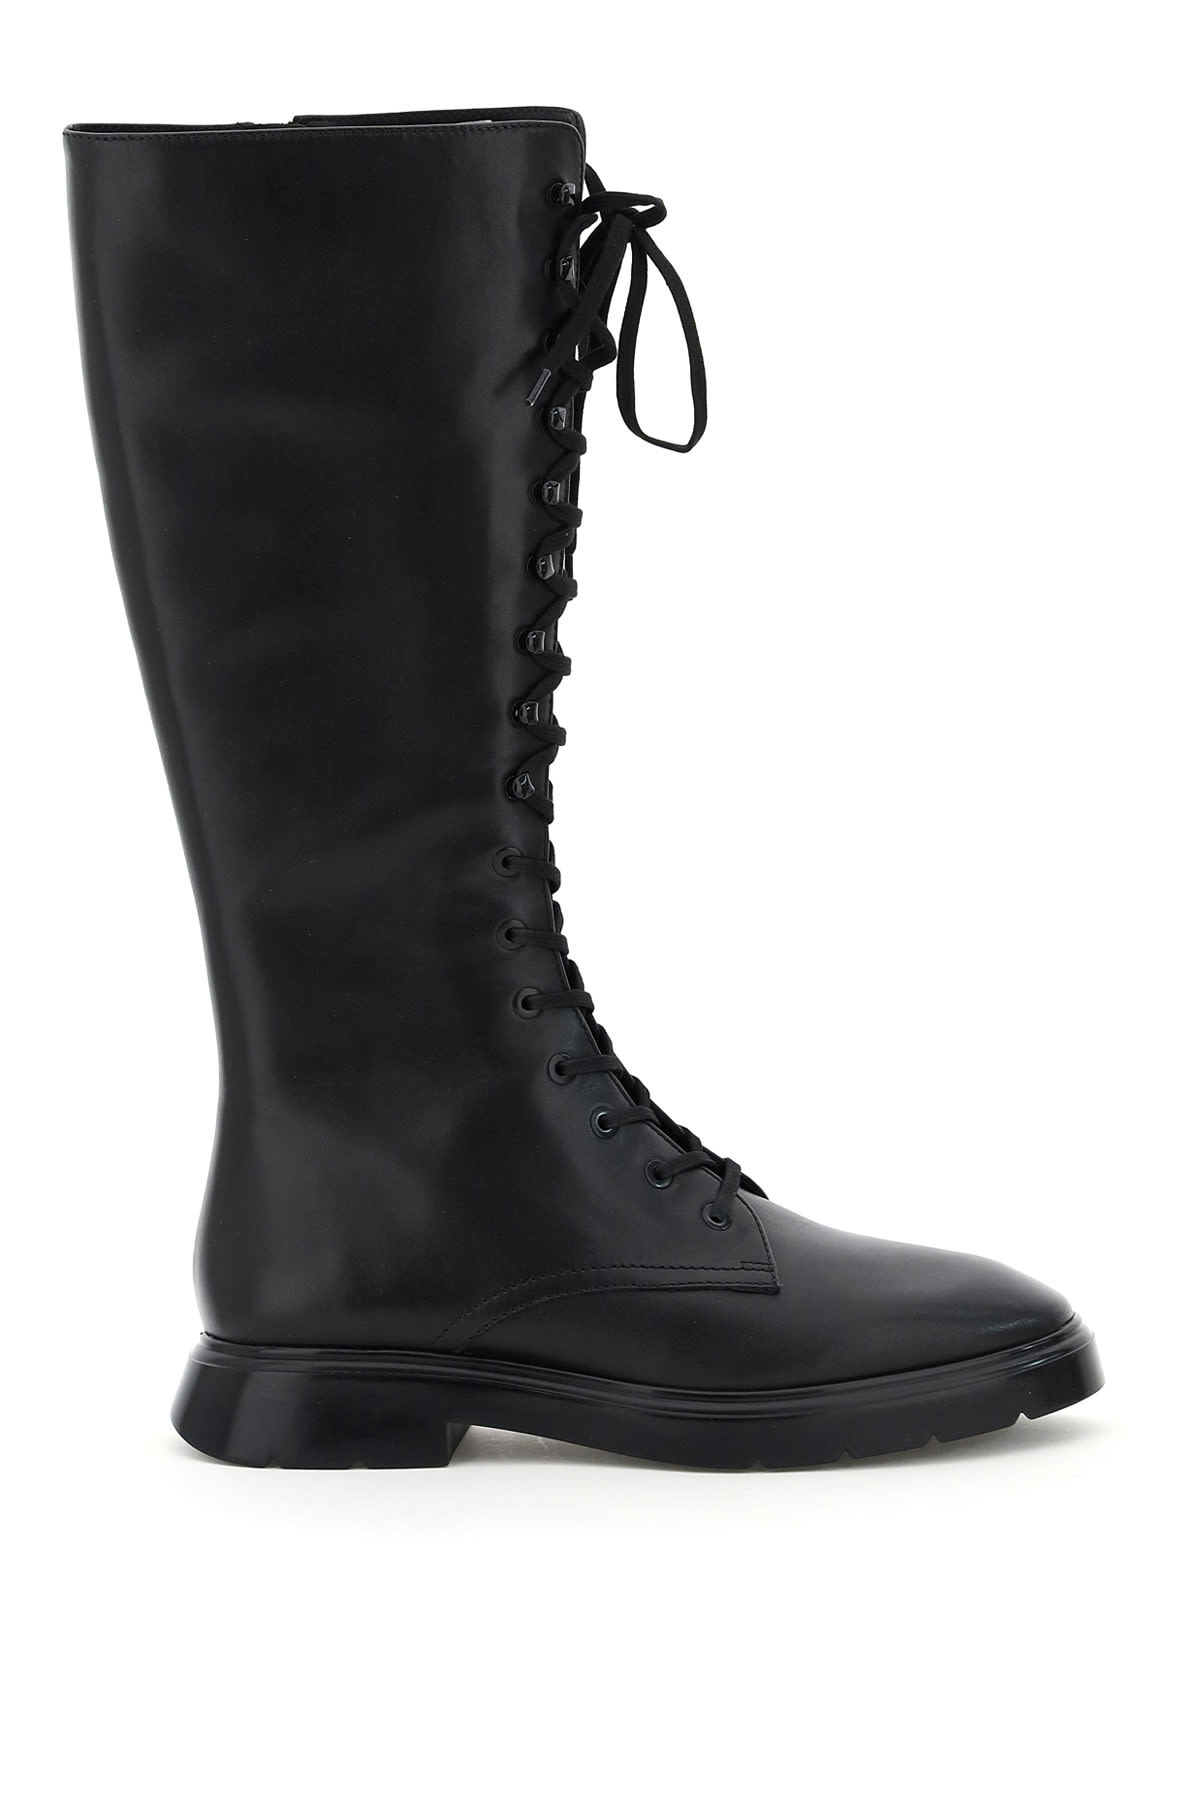 Buy Stuart Weitzman Mckenzee Tall Leather Boots online, shop Stuart Weitzman shoes with free shipping